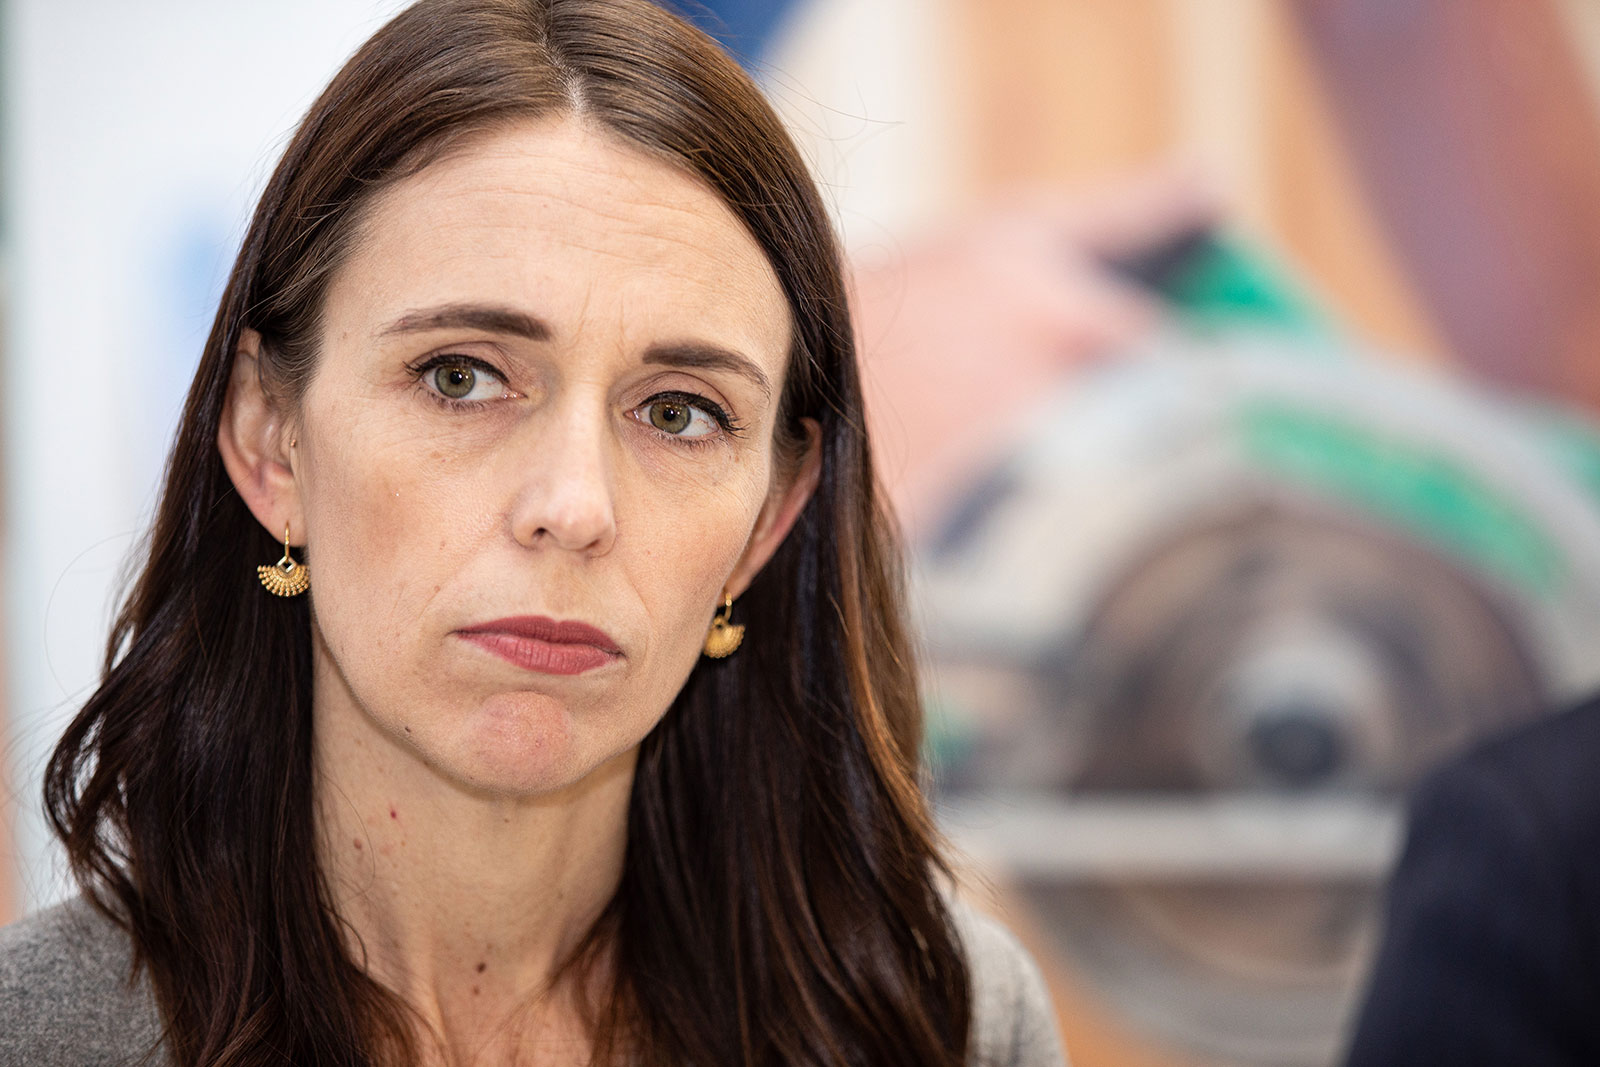 New Zealand Prime Minister Jacinda Ardern has been praised for her country's response to the pandemic.